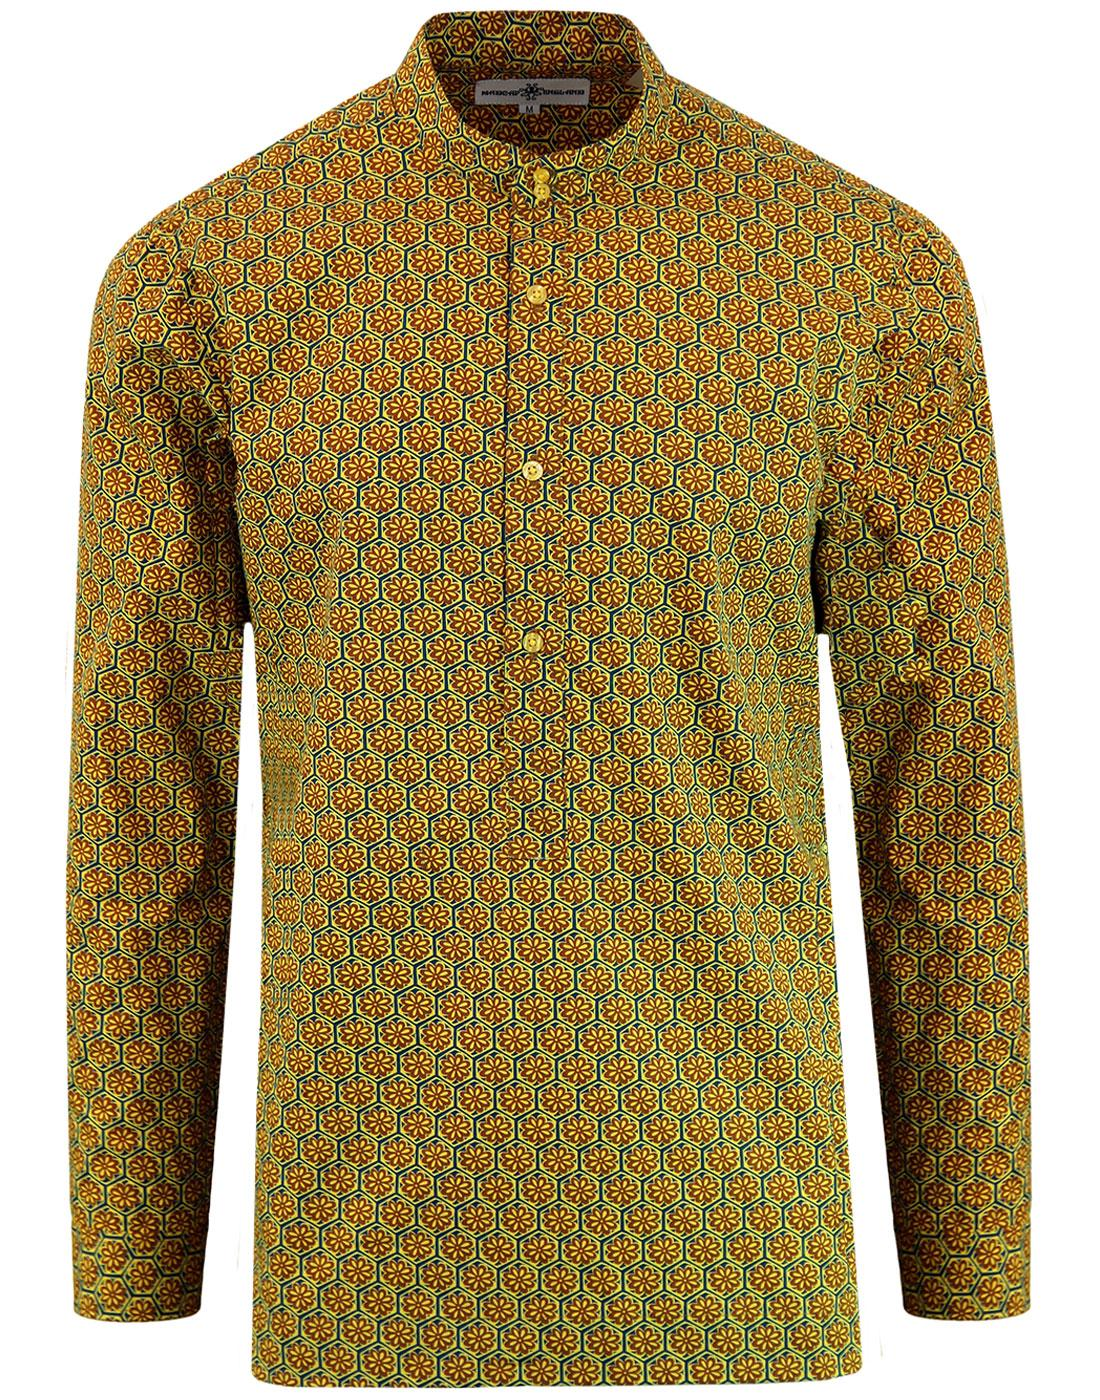 Middle Earth MADCAP ENGLAND 60s Mod Kaftan Shirt